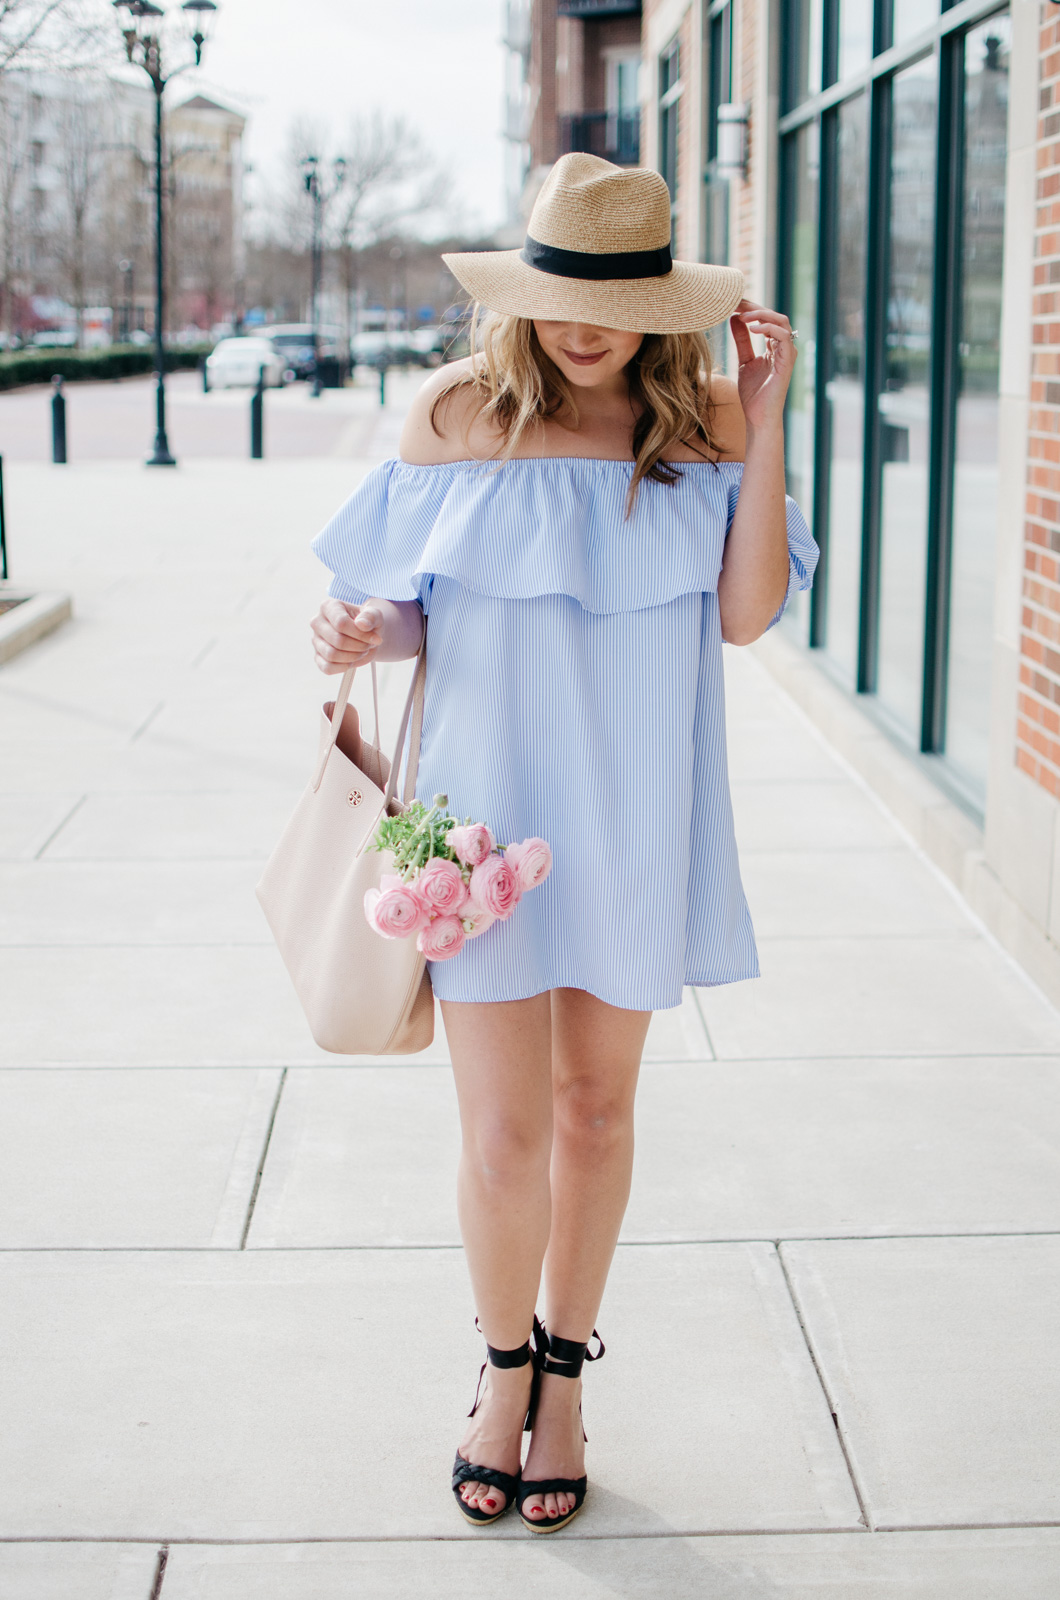 girly spring outfits - what to wear spring | | Click through for more cute spring outfits or to shop this look! bylaurenm.com